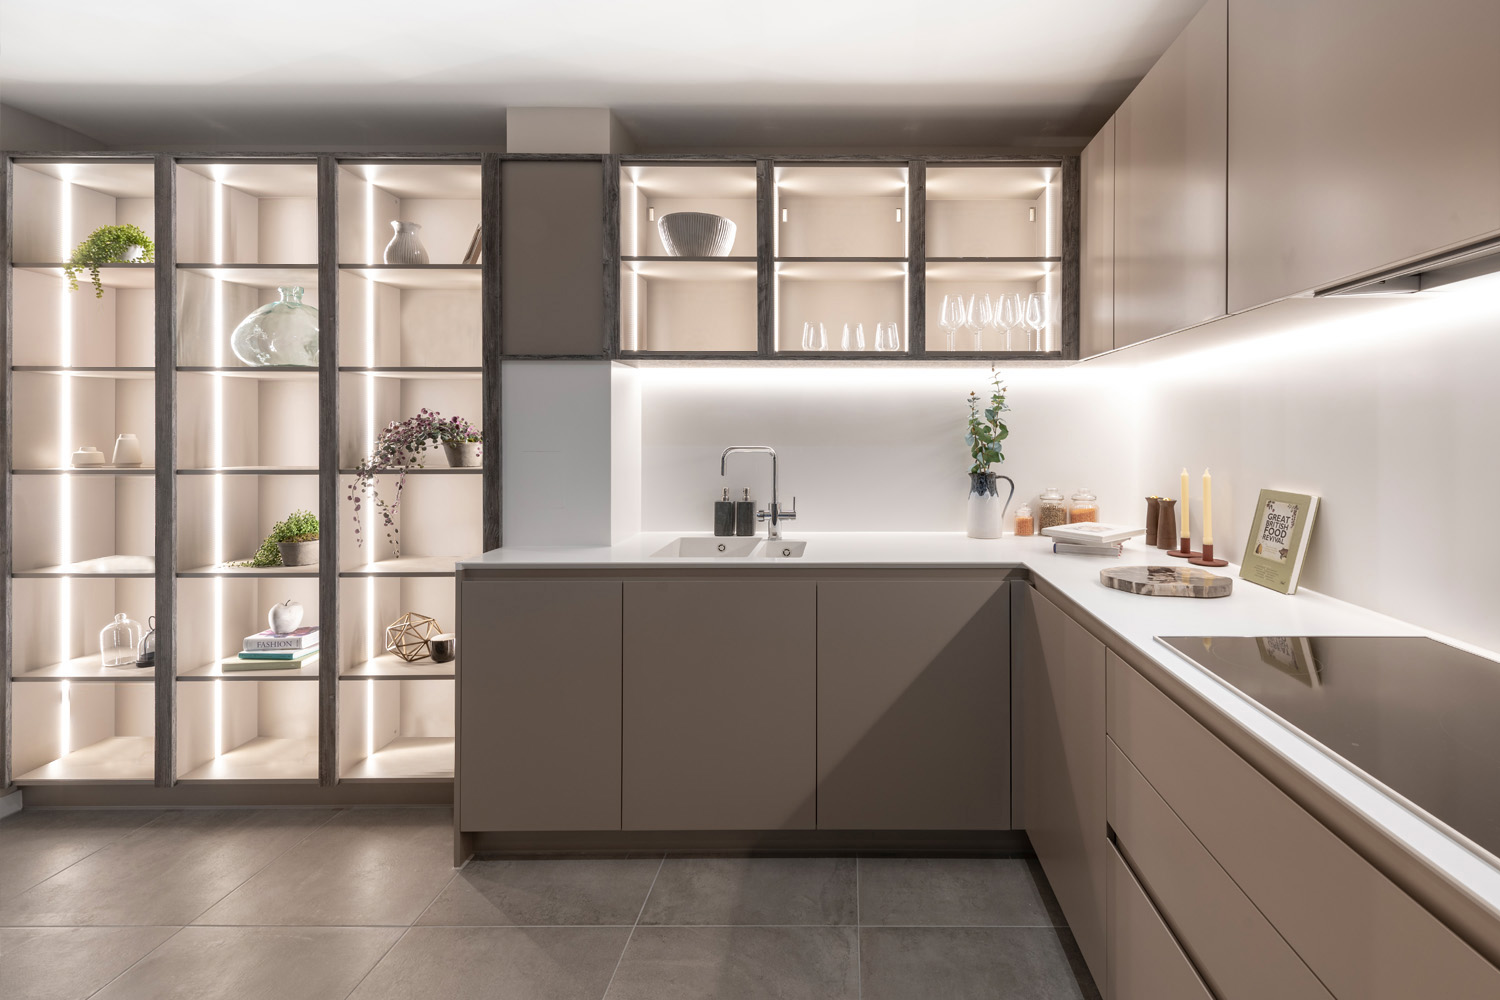 SUNA-INTERIOR-DESIGN_PEABODY_WHARF-ROAD_ISLINGTON_KITCHEN-DESIGN-002 PS shelves.jpg